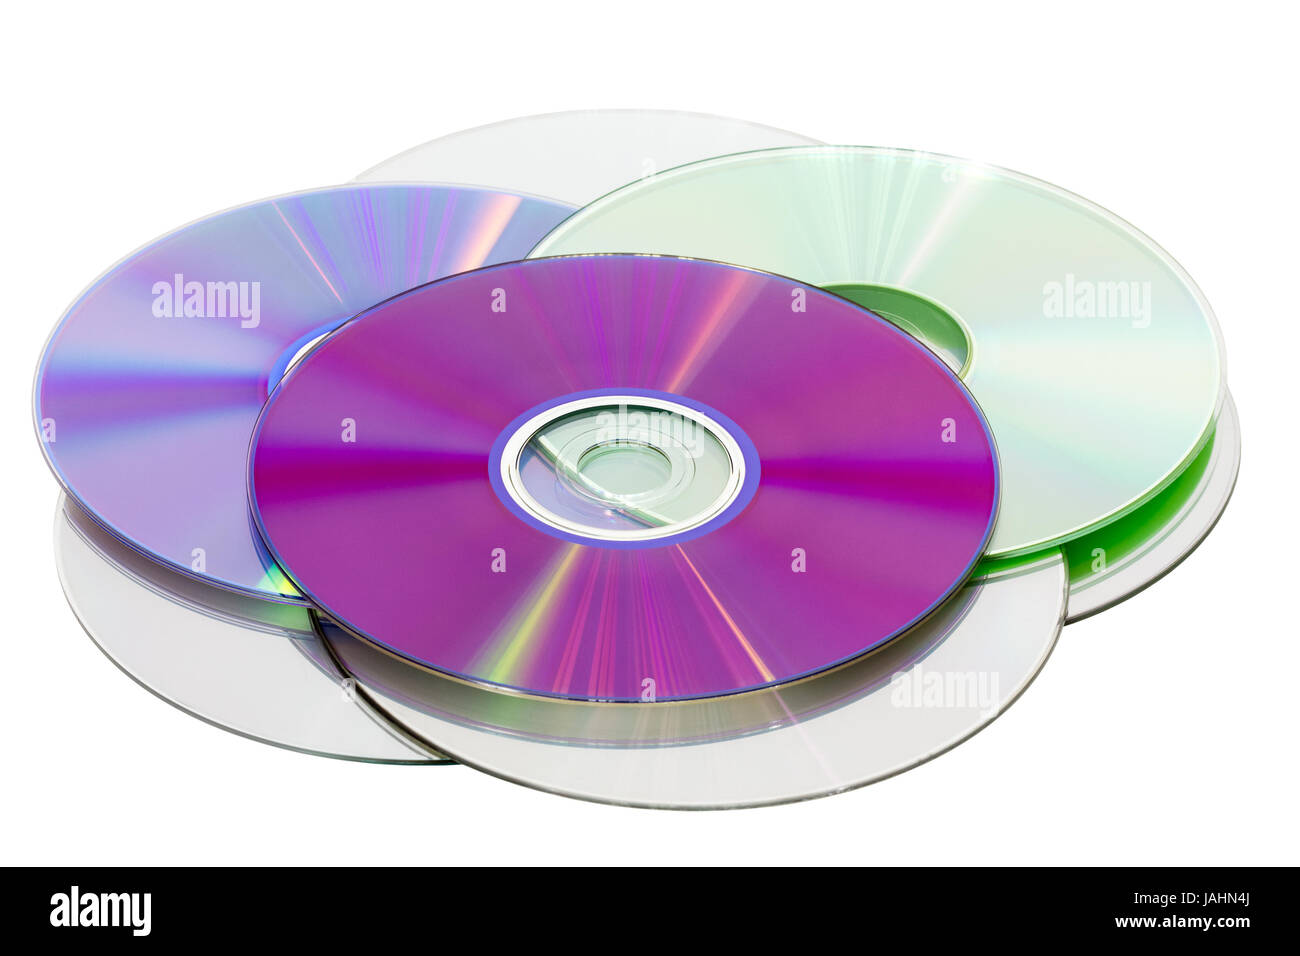 Stack of CD & DVD discs, isolated on white background Stock Photo